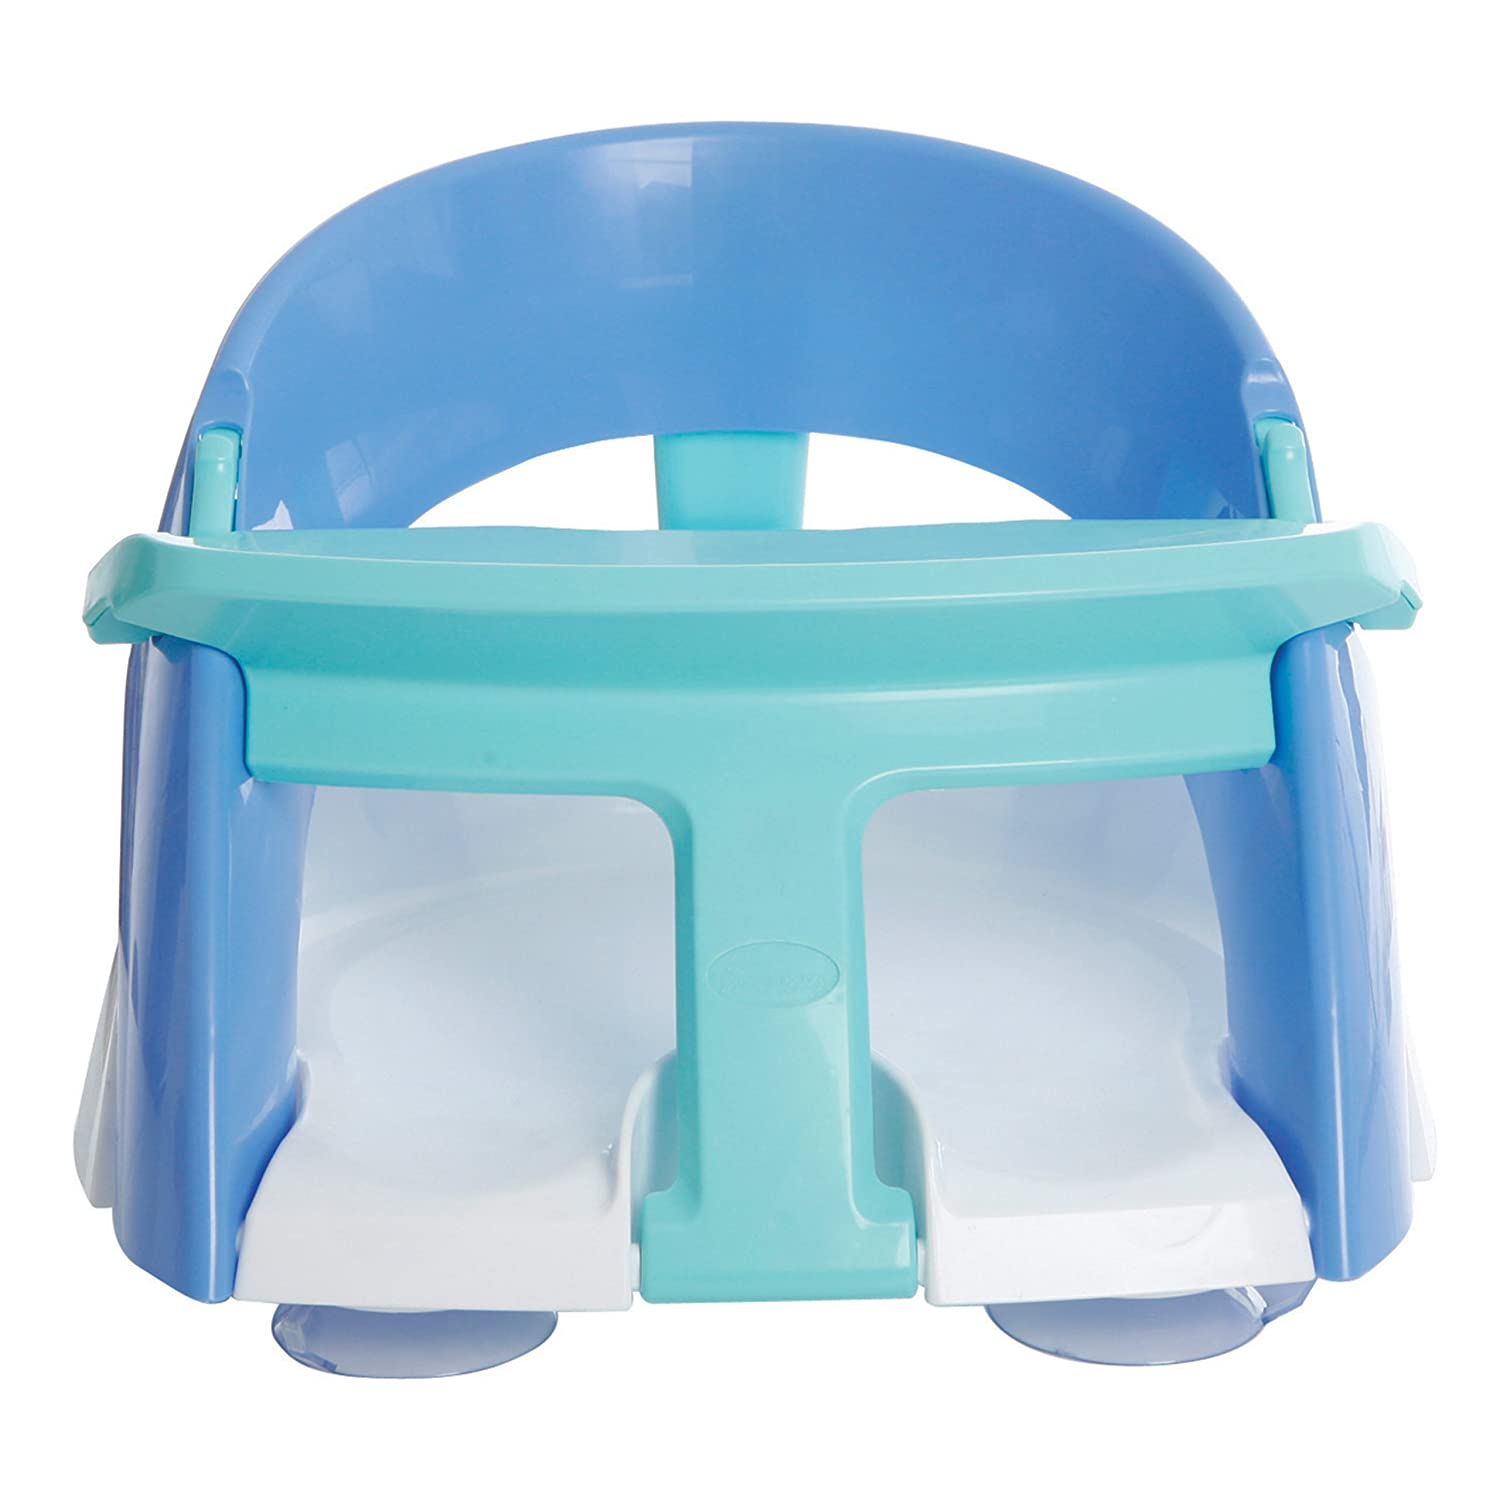 Dreambaby Premium Bath Seat Blue Amazon Baby